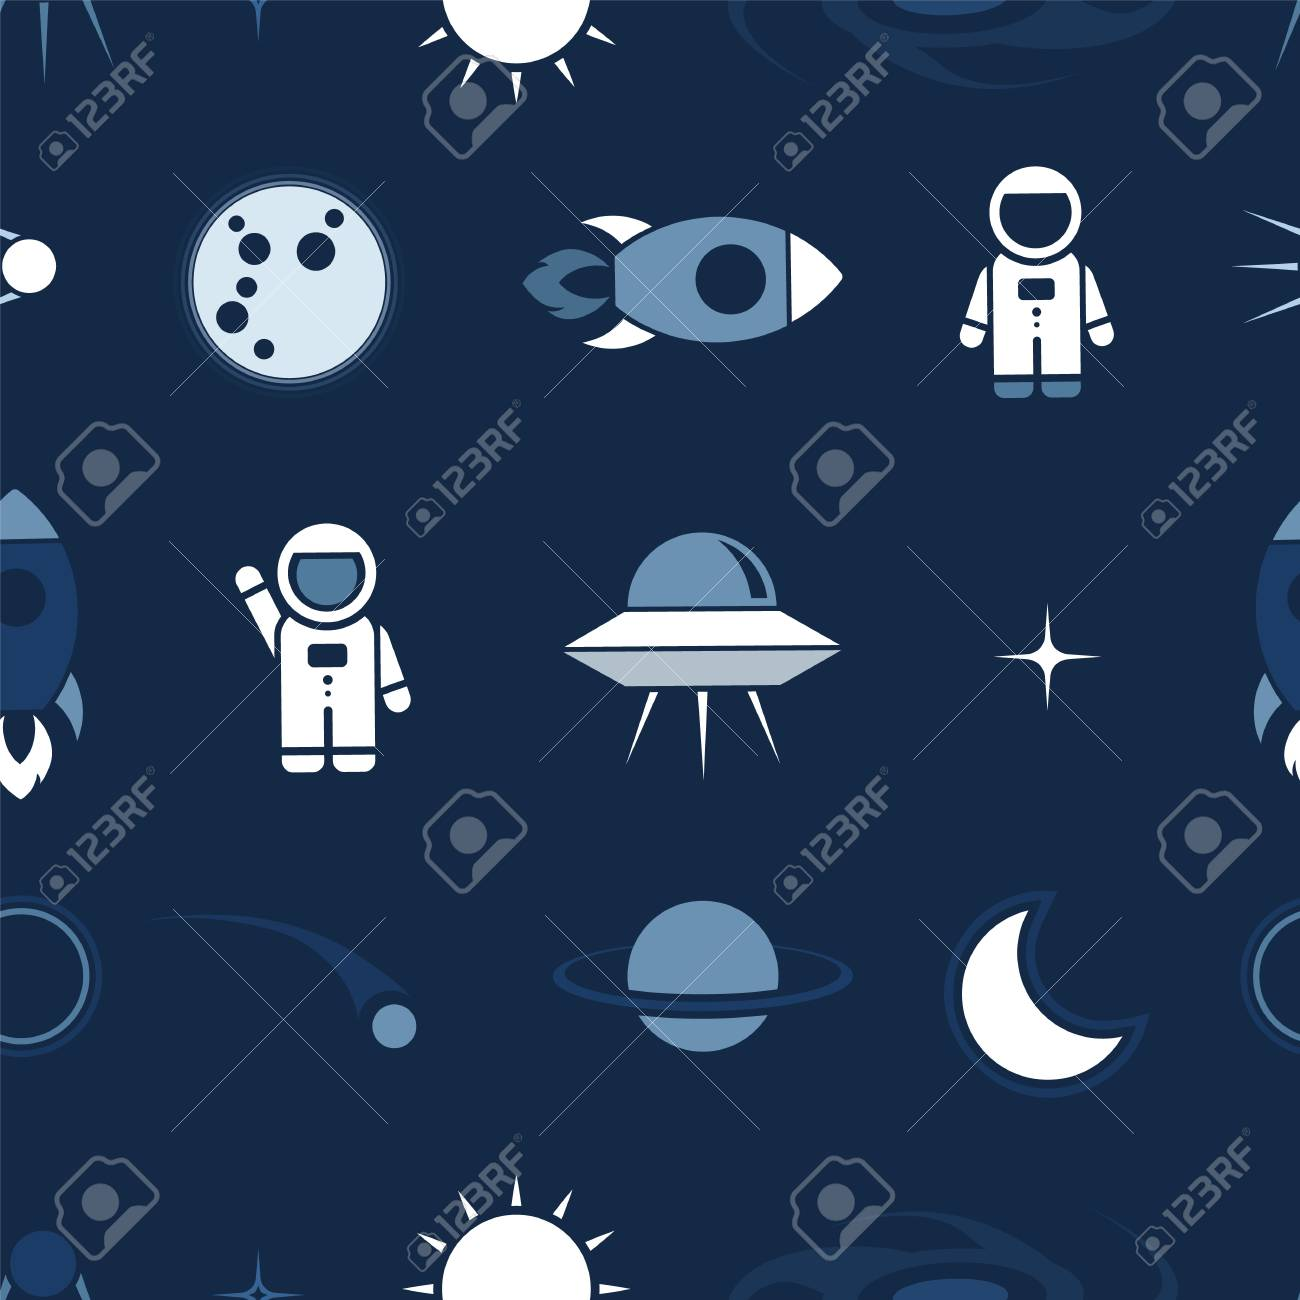 Template Of A Flying Astronaut Stock Photo